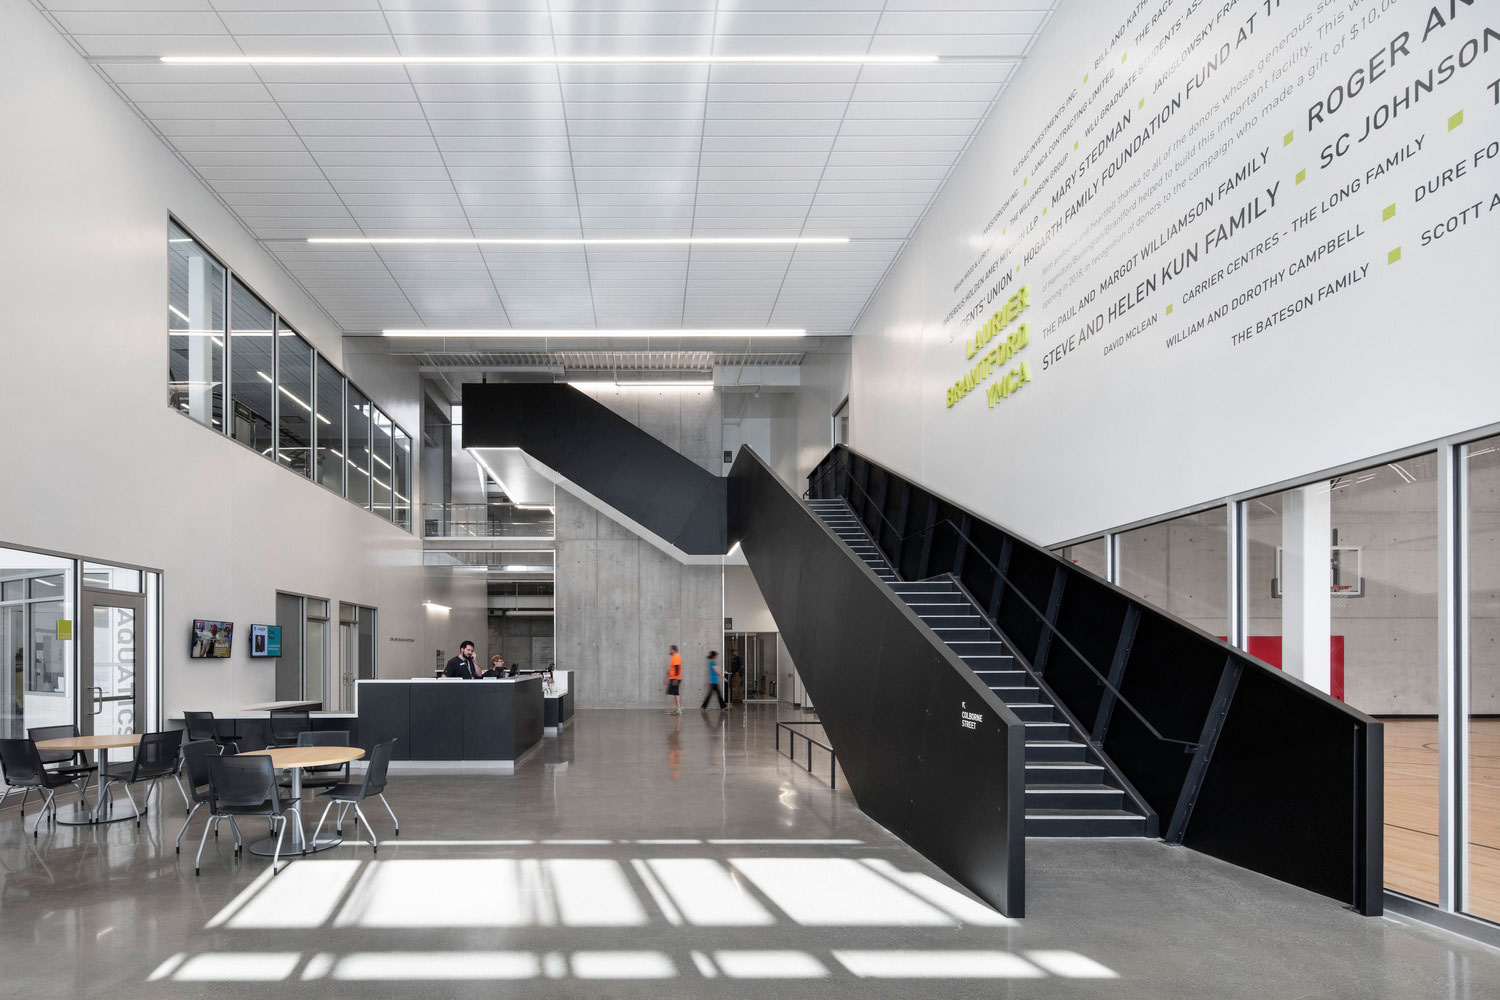 Laurier Brantford YMCA, Wilfrid Laurier University, ON, Canada, CannonDesign, Photography Adrian Williams